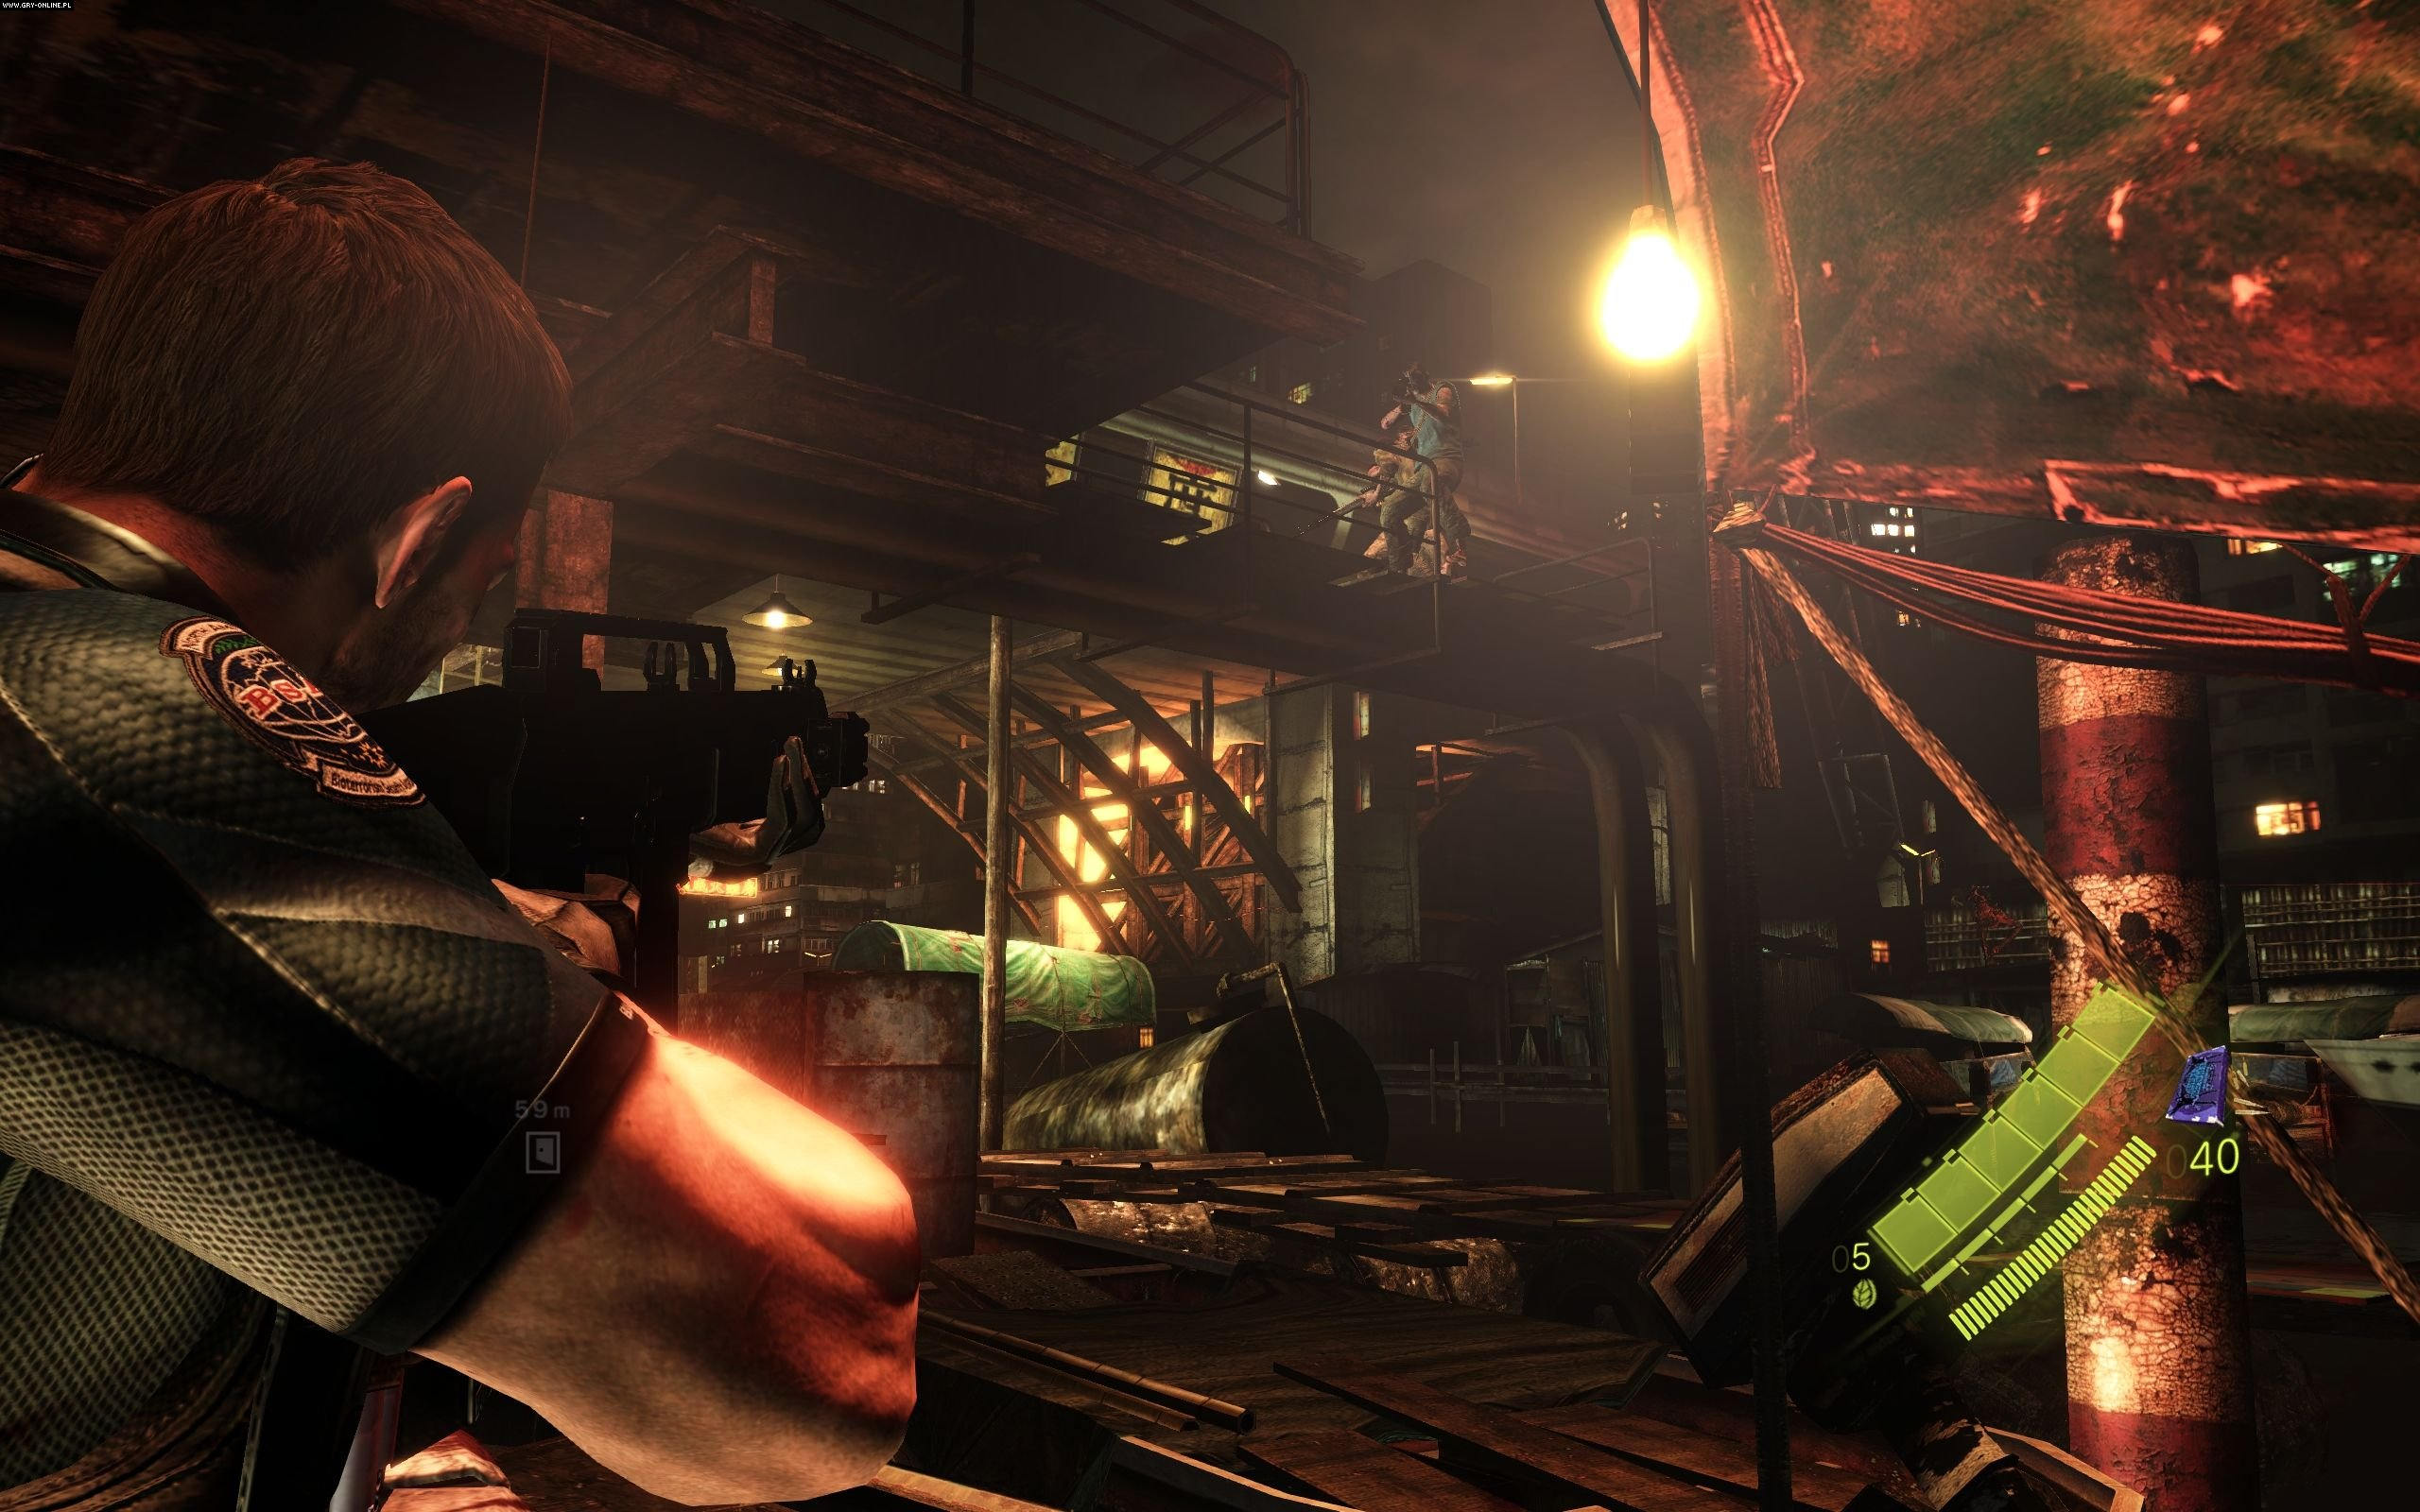 Resident Evil 6 X360, PS3, PS4, XONE, Switch Gry Screen 70/237, Capcom